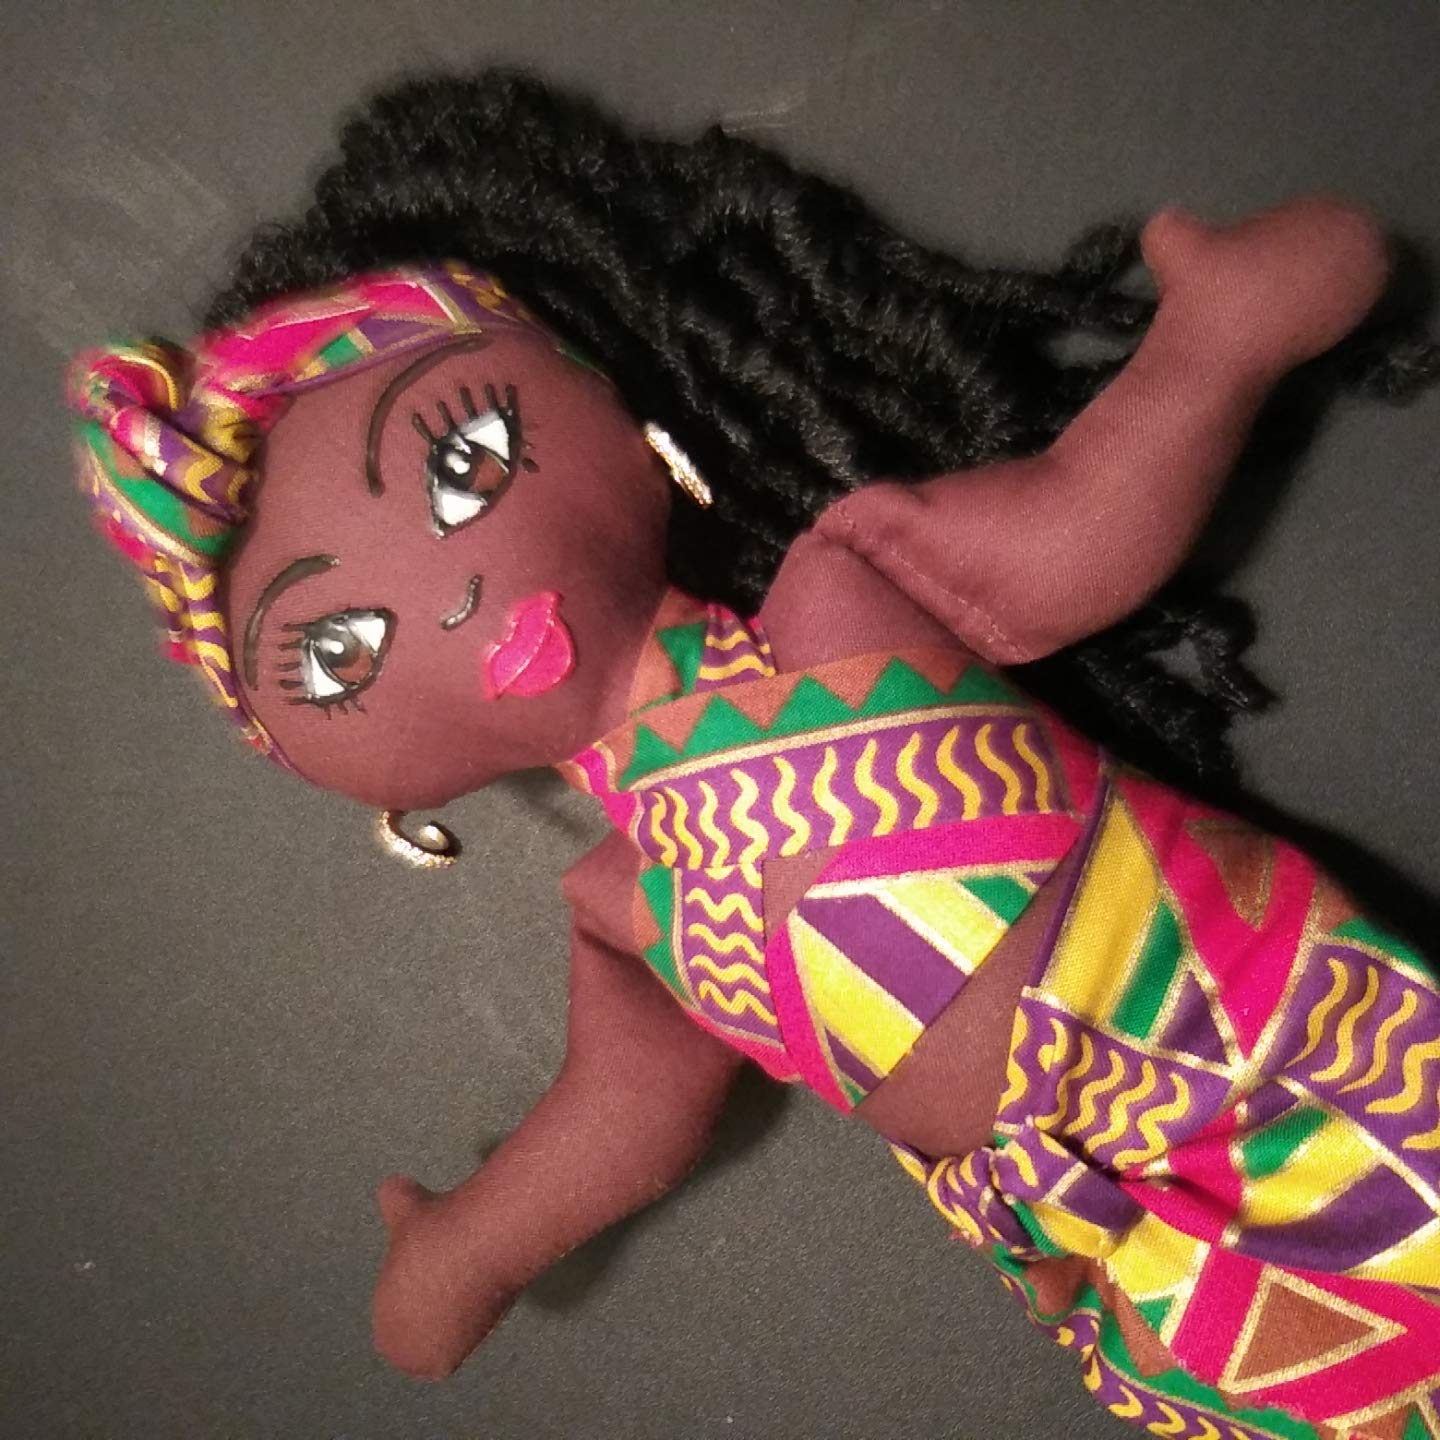 Hand Painted Handcrafted African American Doll Head Wrap Ethnic Doll 14 inch Doll Collectible Doll Black Doll Natural Hair Styles African Inspired Black Doll Maker Multicultural Doll